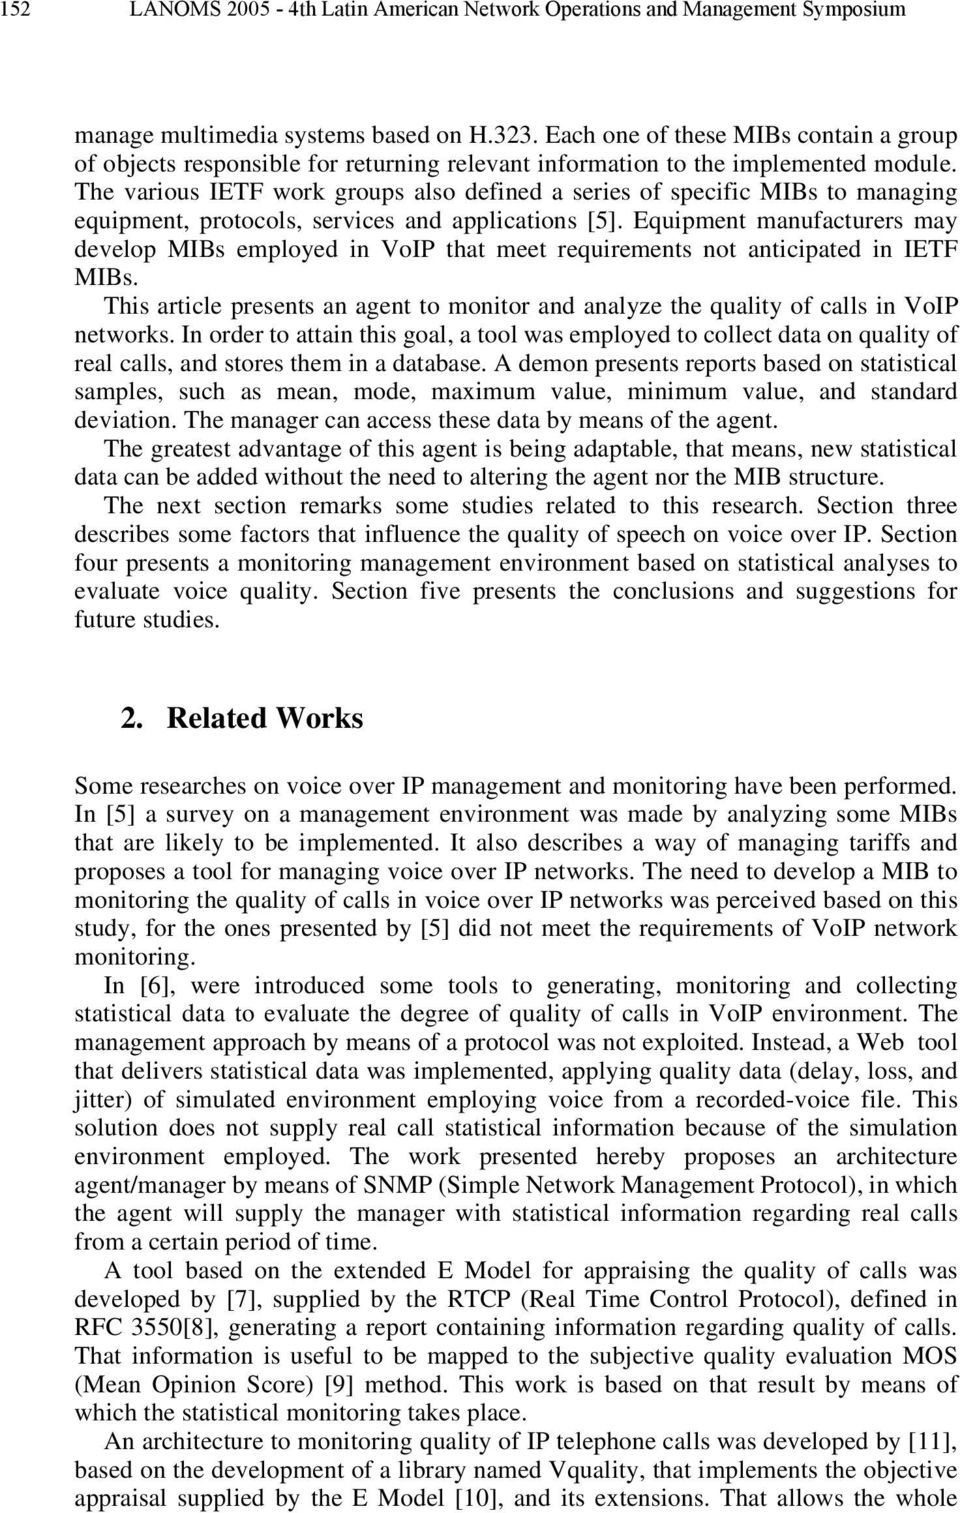 The various IETF work groups also defined a series of specific MIBs to managing equipment, protocols, services and applications [5].